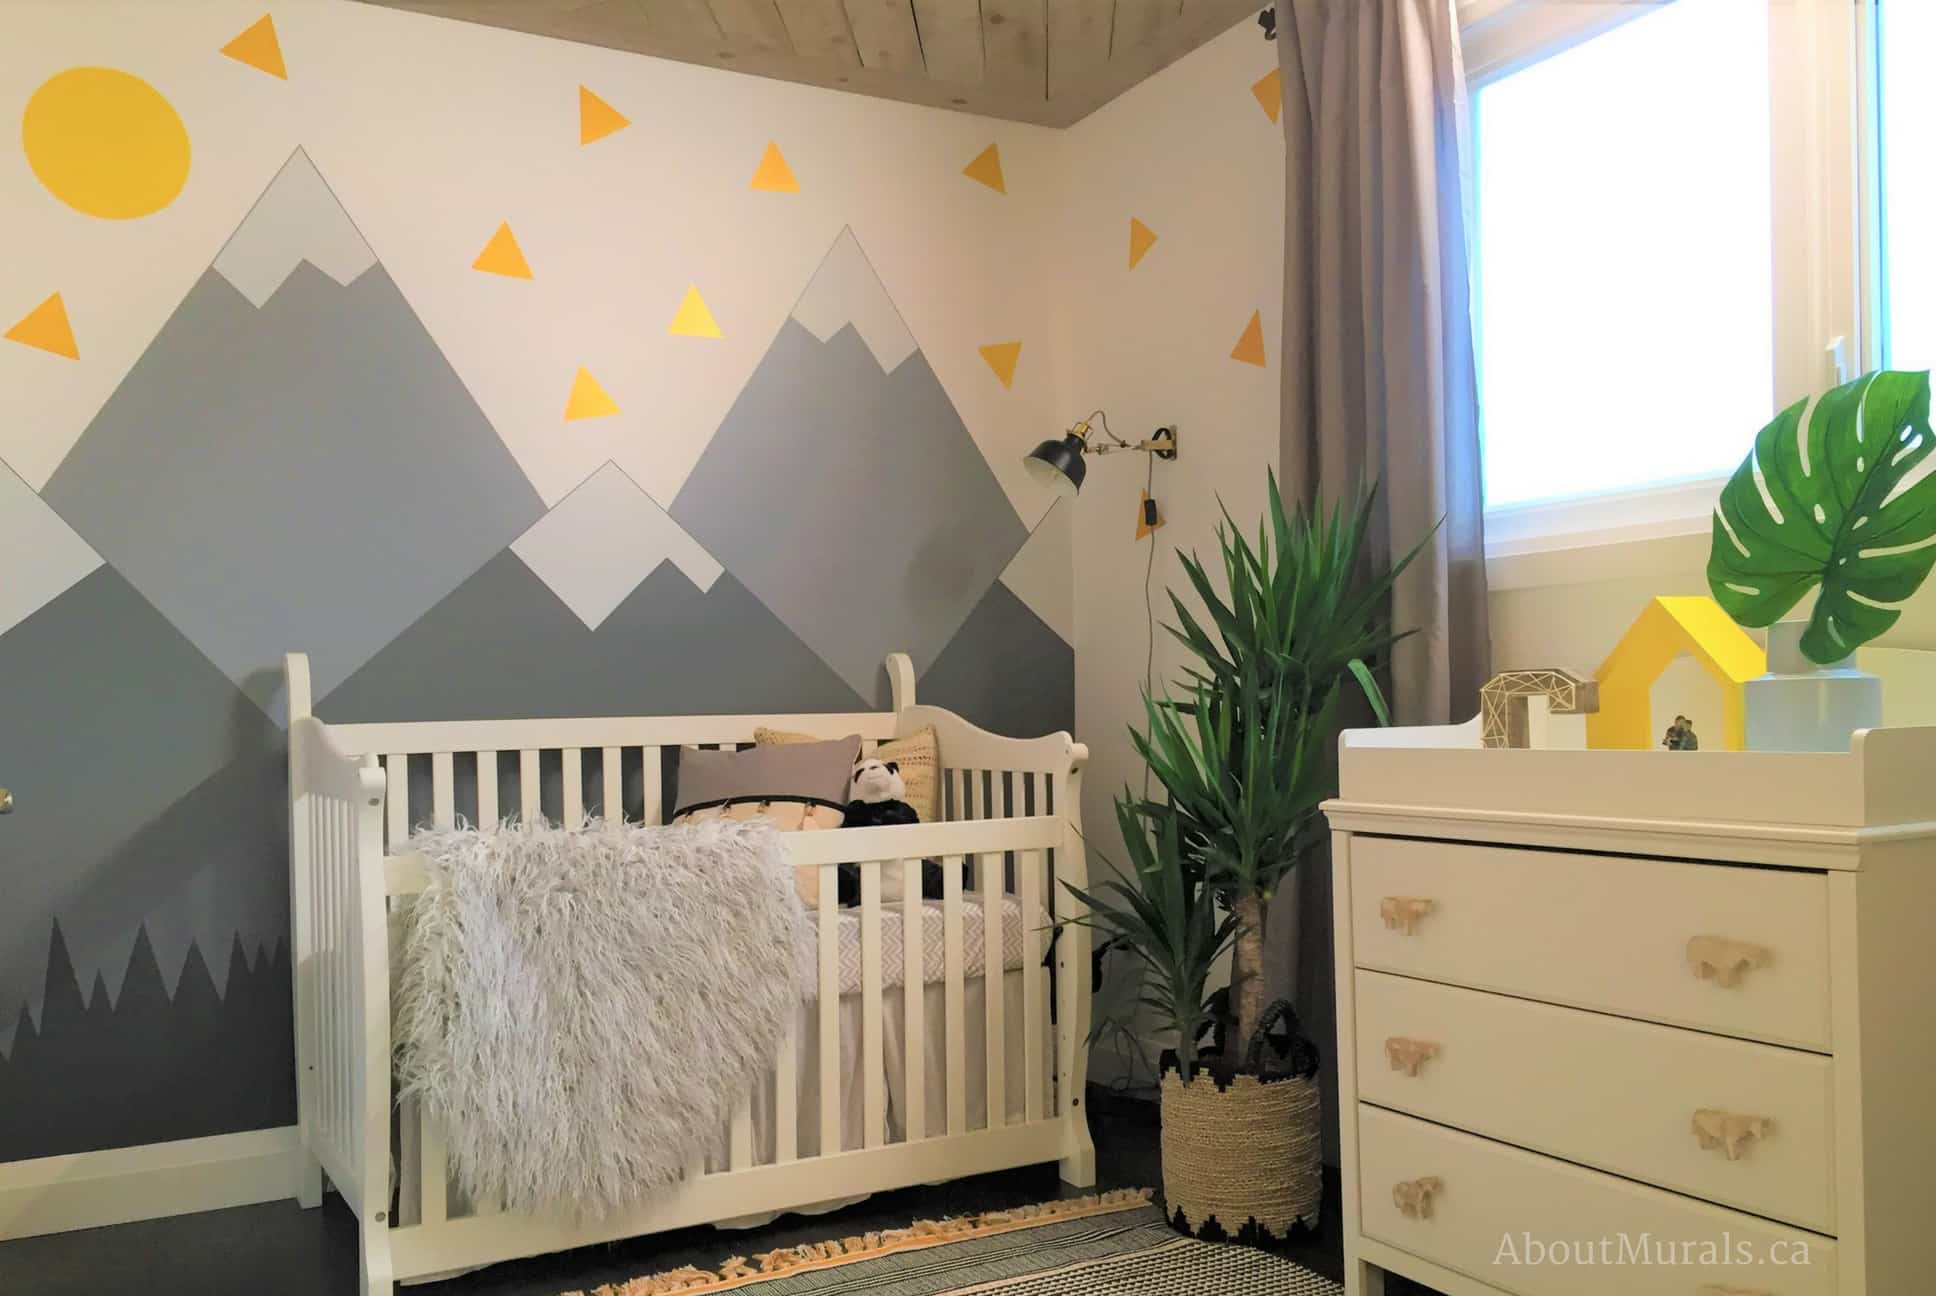 A kids wall mural painted in a mountain themed nursery by Adrienne of AboutMurals.ca